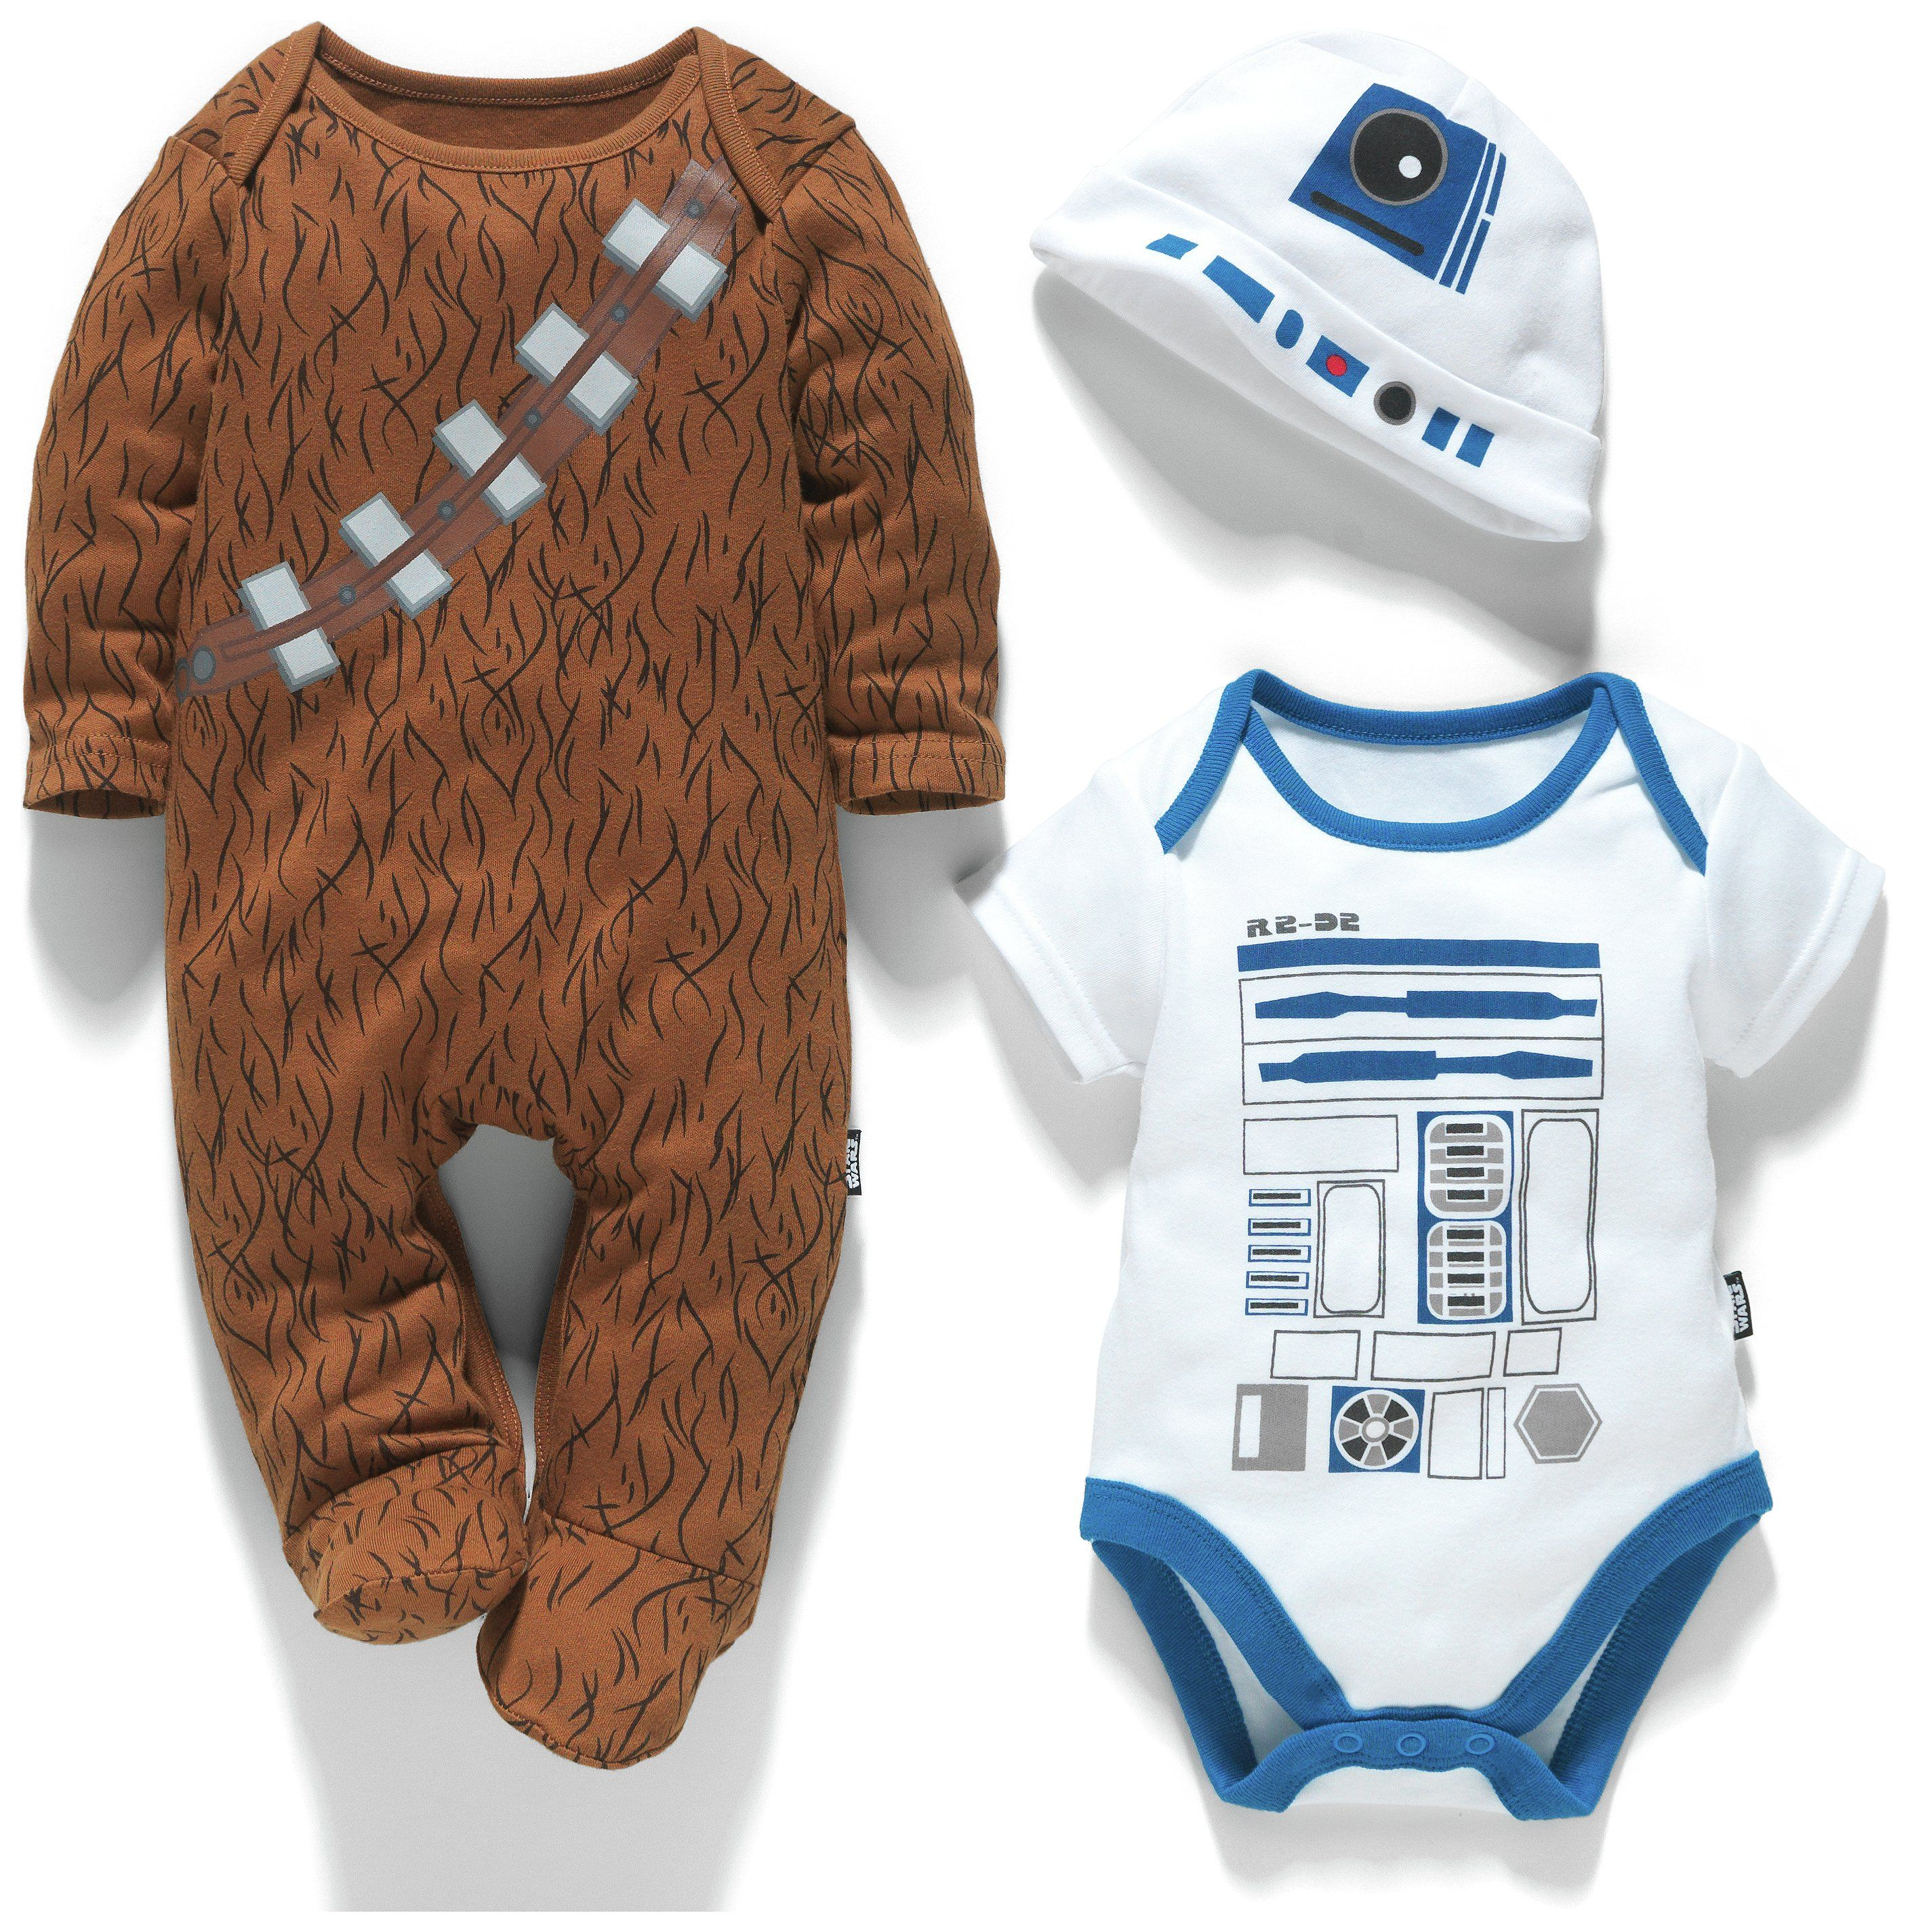 Buy Disney Star Wars Gift Set - 0-3 Months at Argos.co.uk fc4908fd310